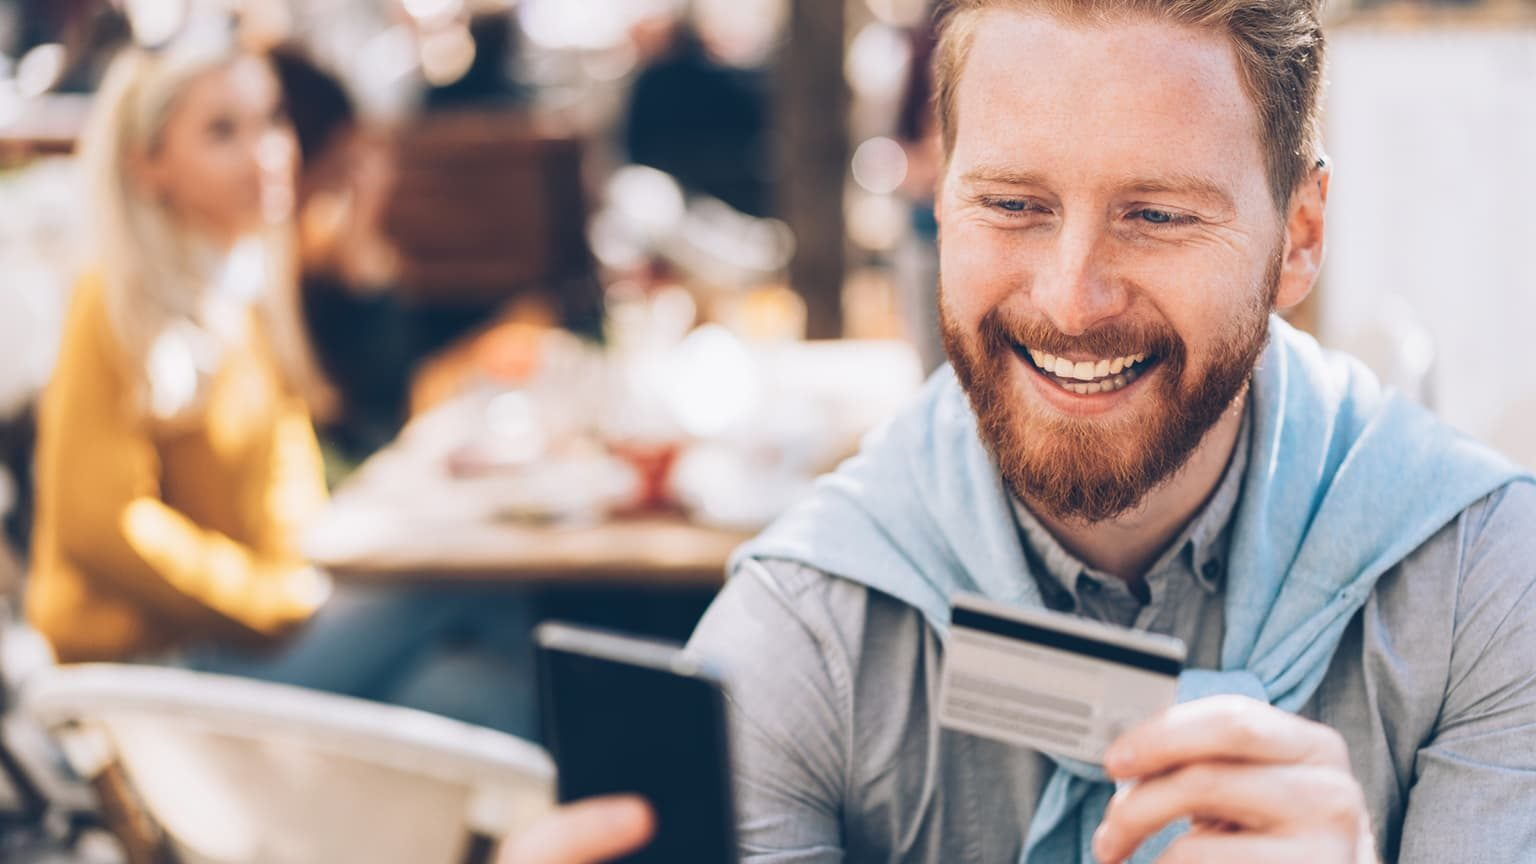 Young man online banking outdoor in cafe